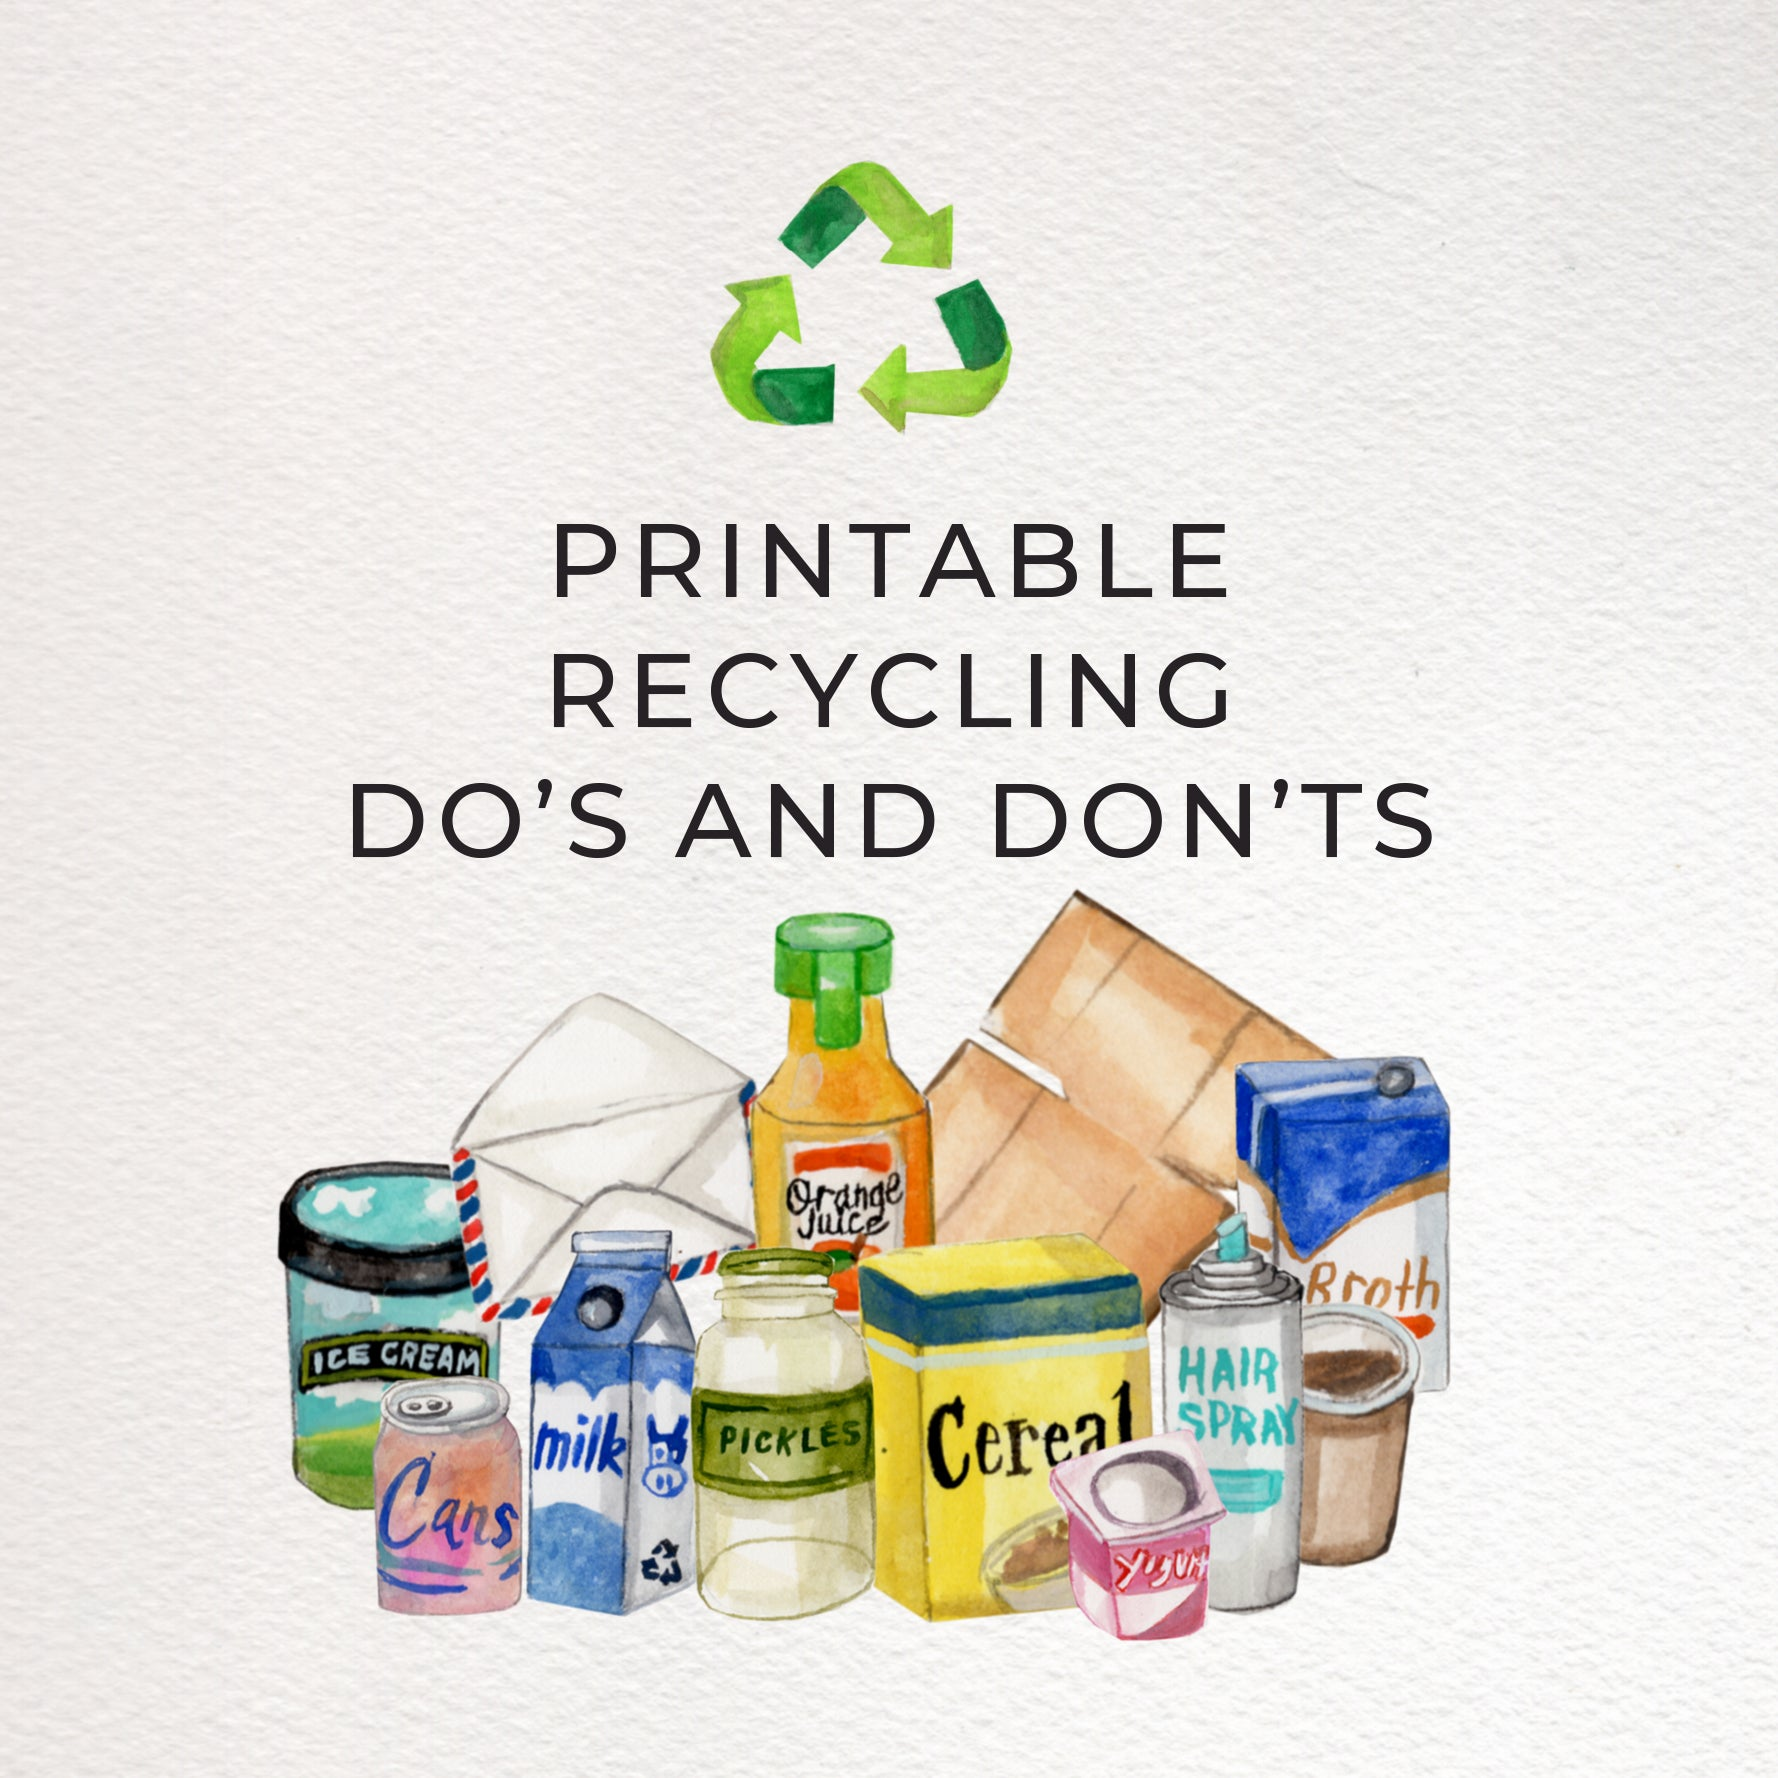 Printable Recycling Do's and Don'ts